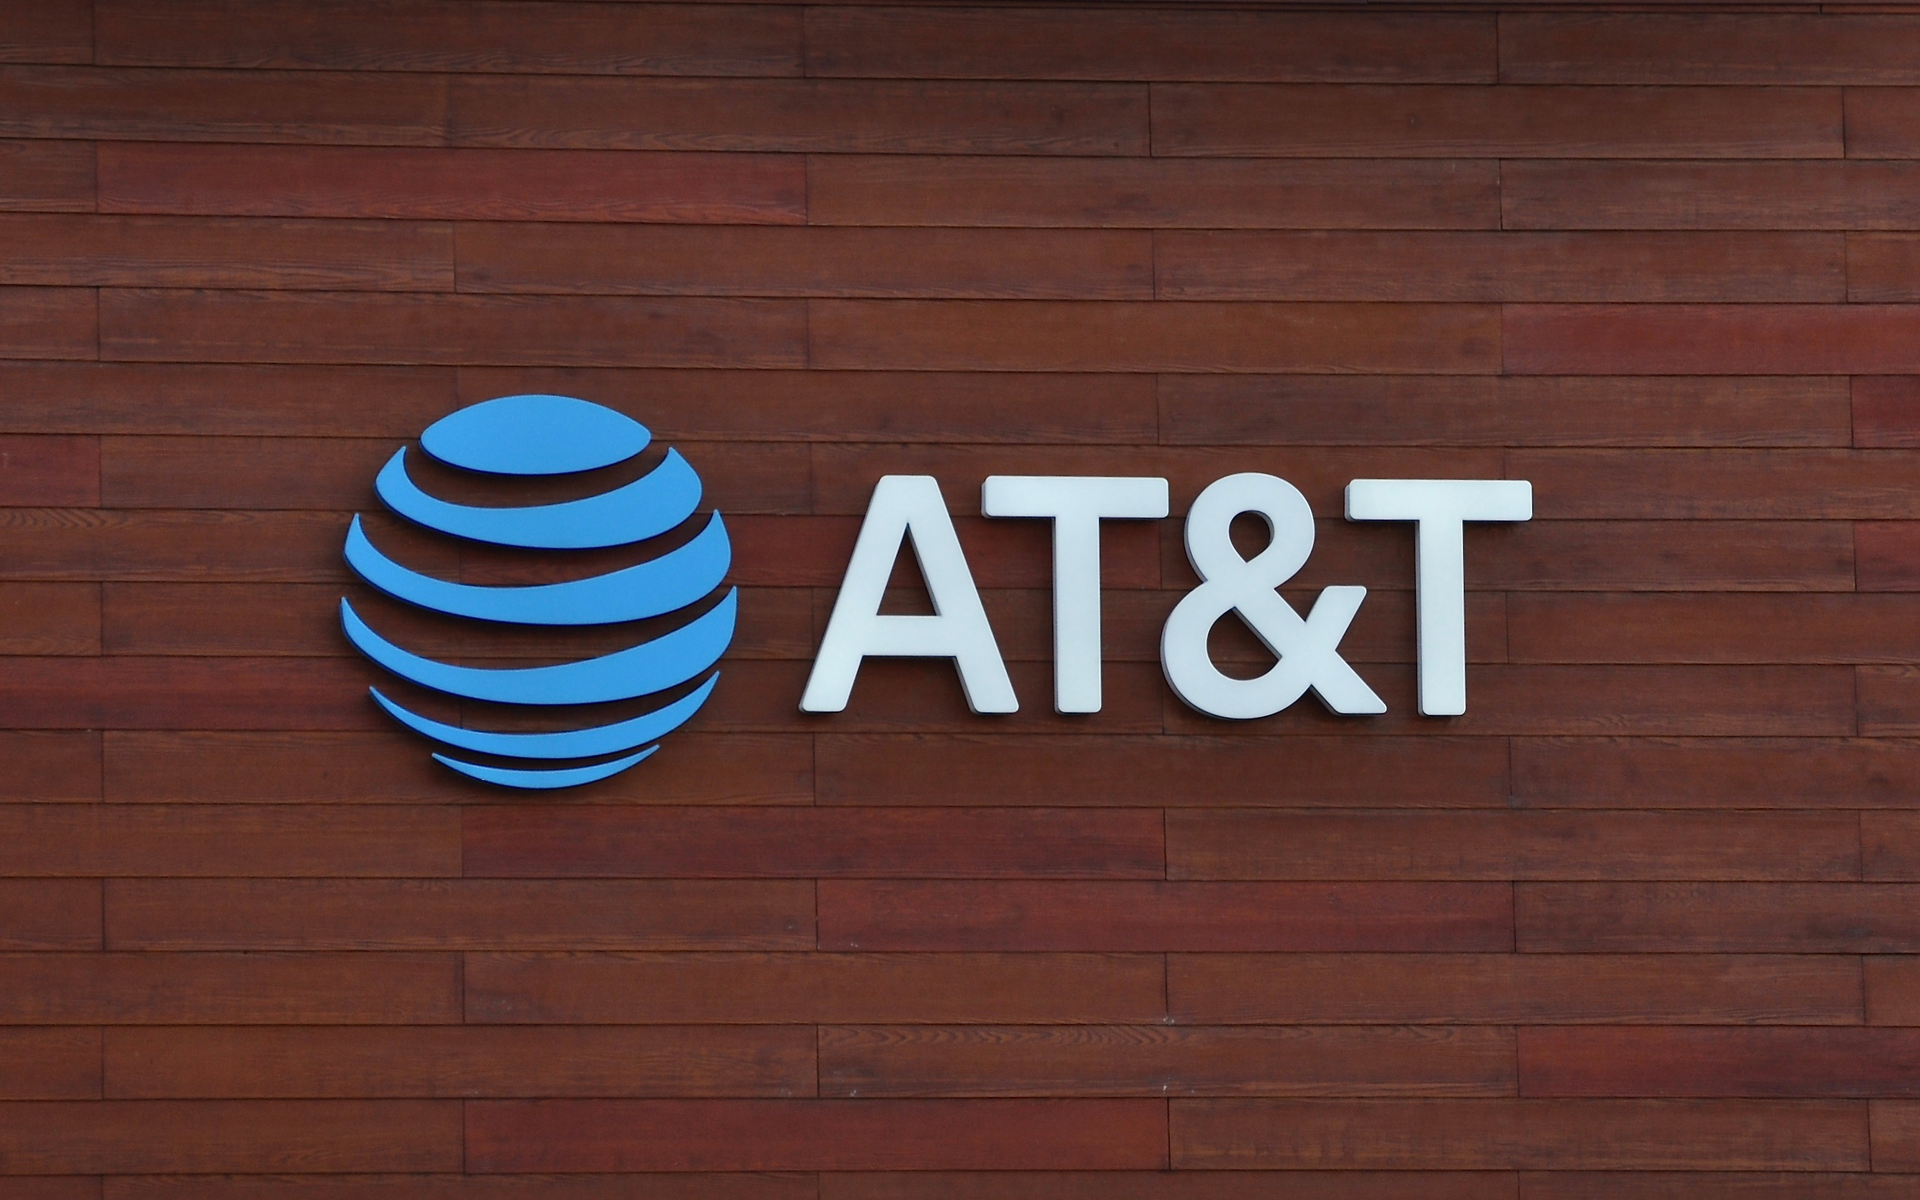 AT&T Becomes 1st Major Mobile Network to Accept Crypto Payments